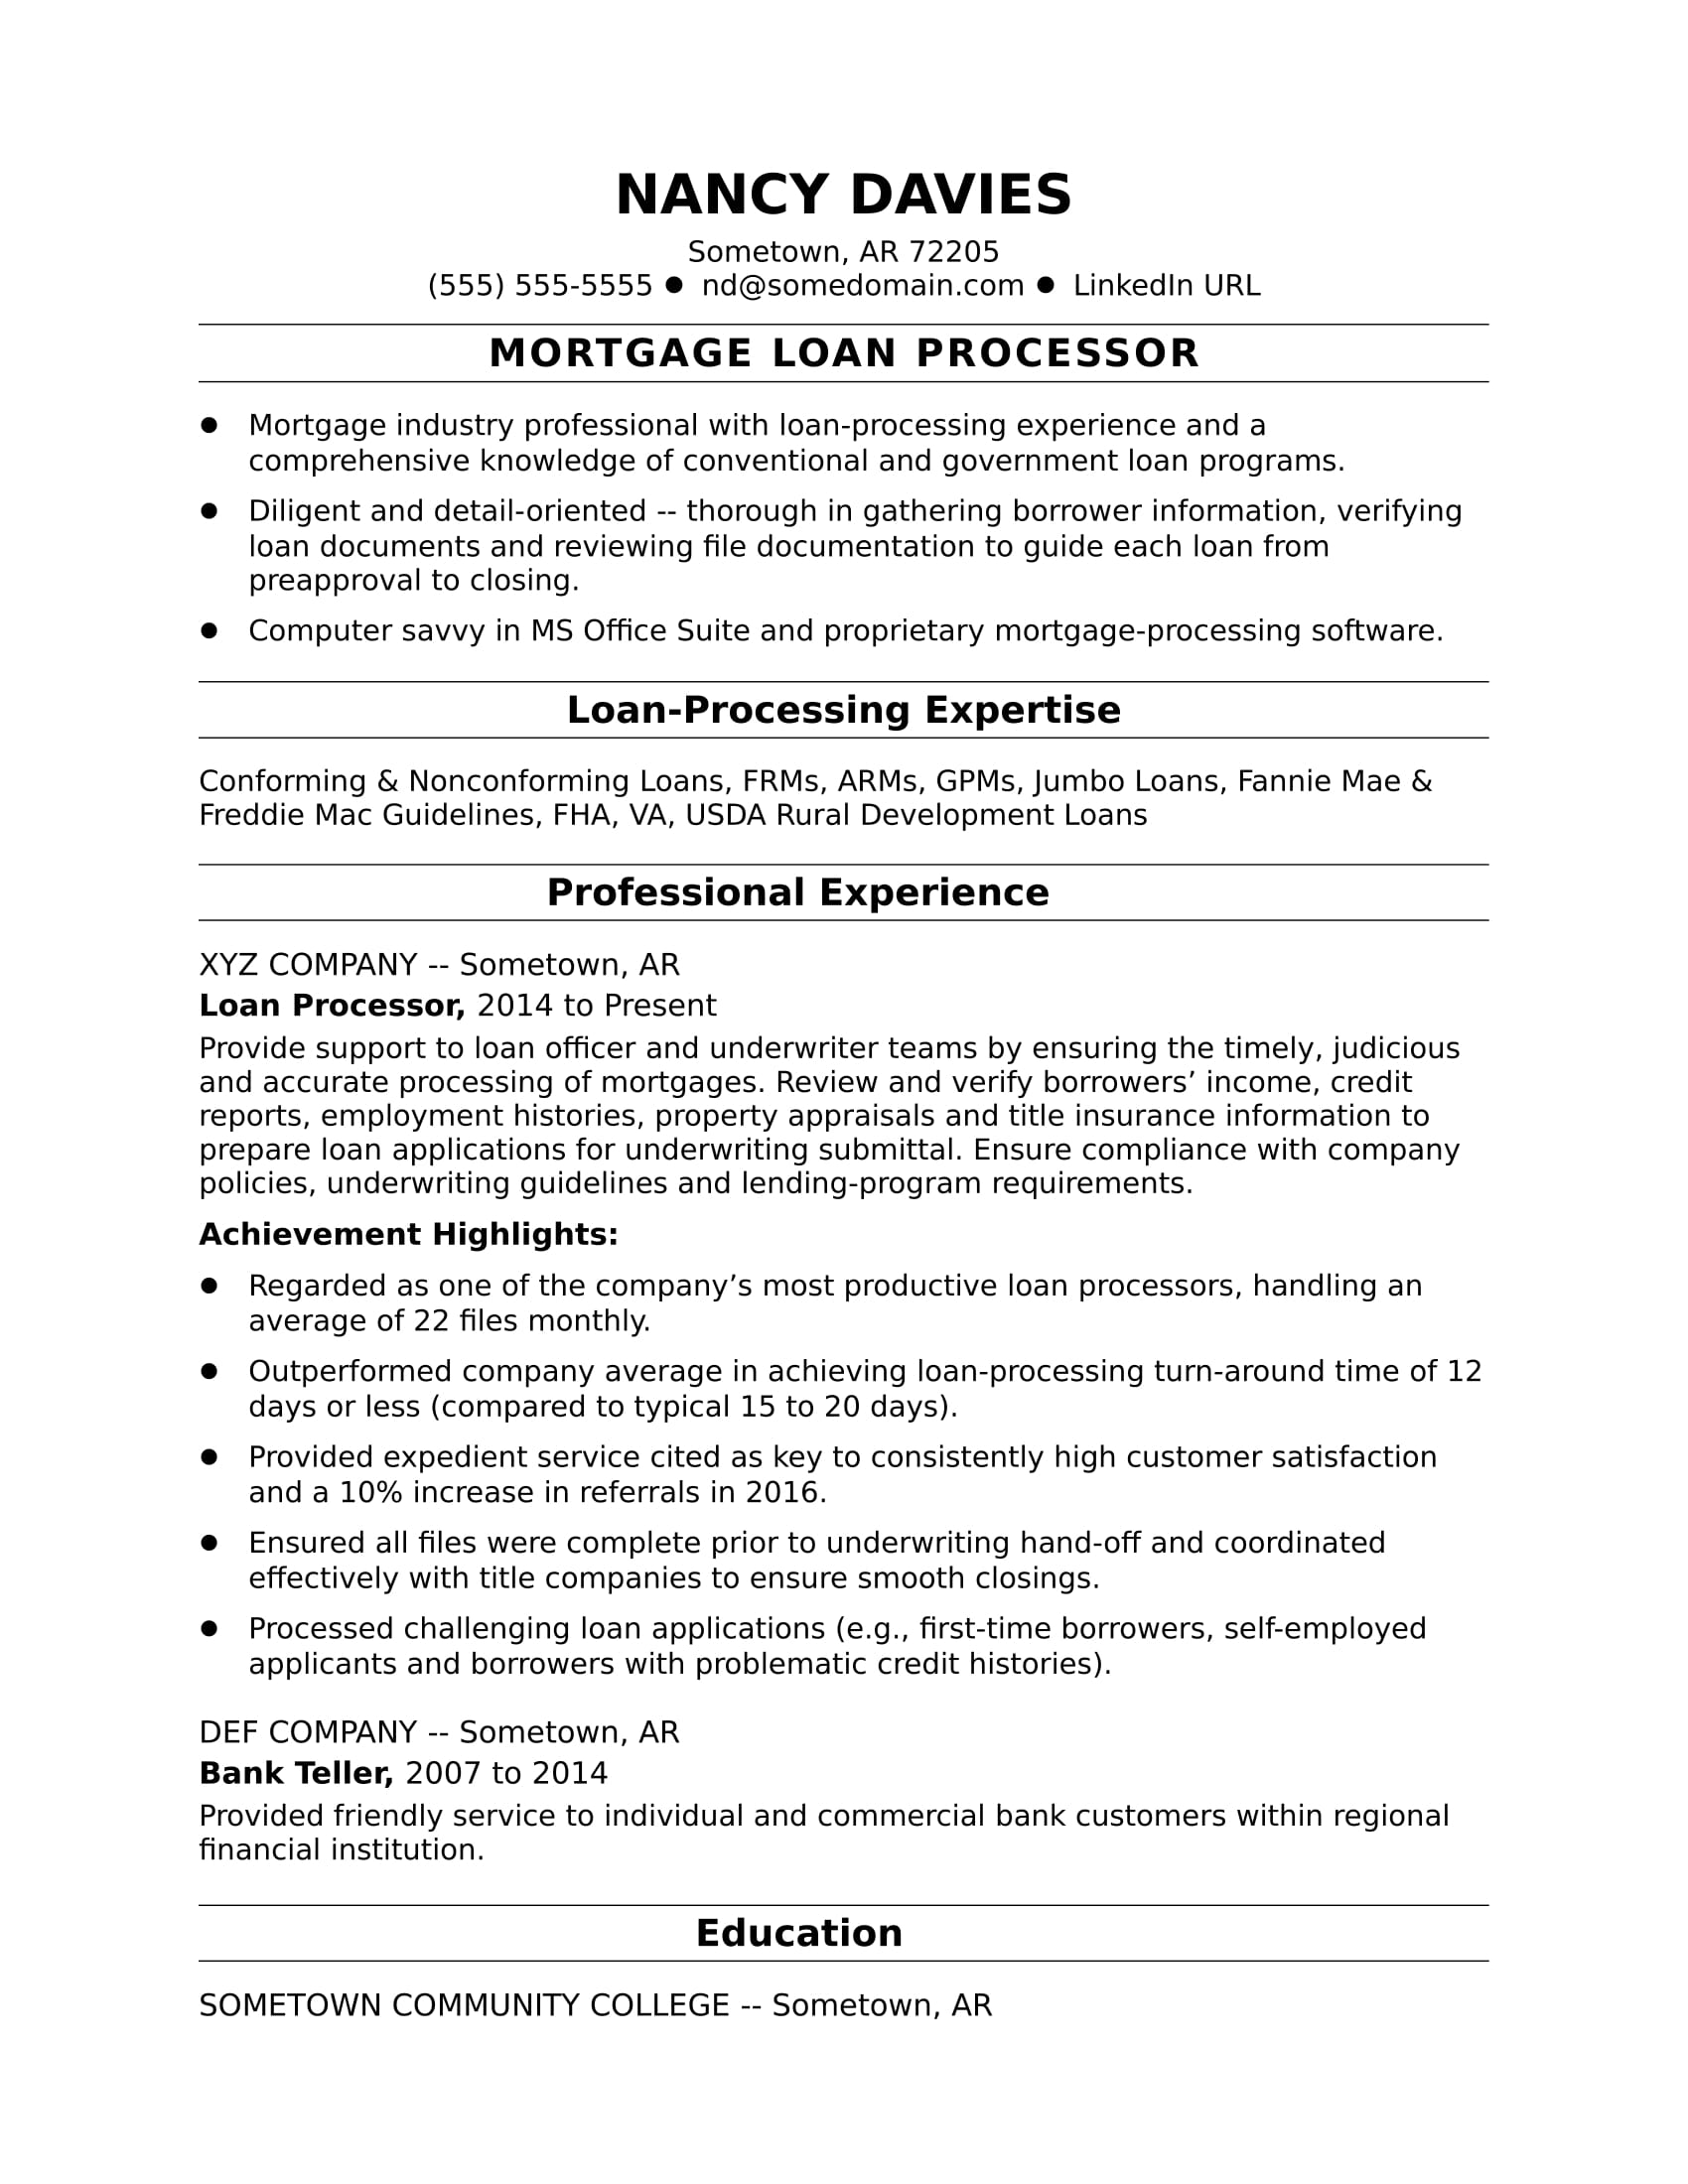 mortgage loan processor resume sample monster skills for apparel production assistant Resume Mortgage Skills List For Resume